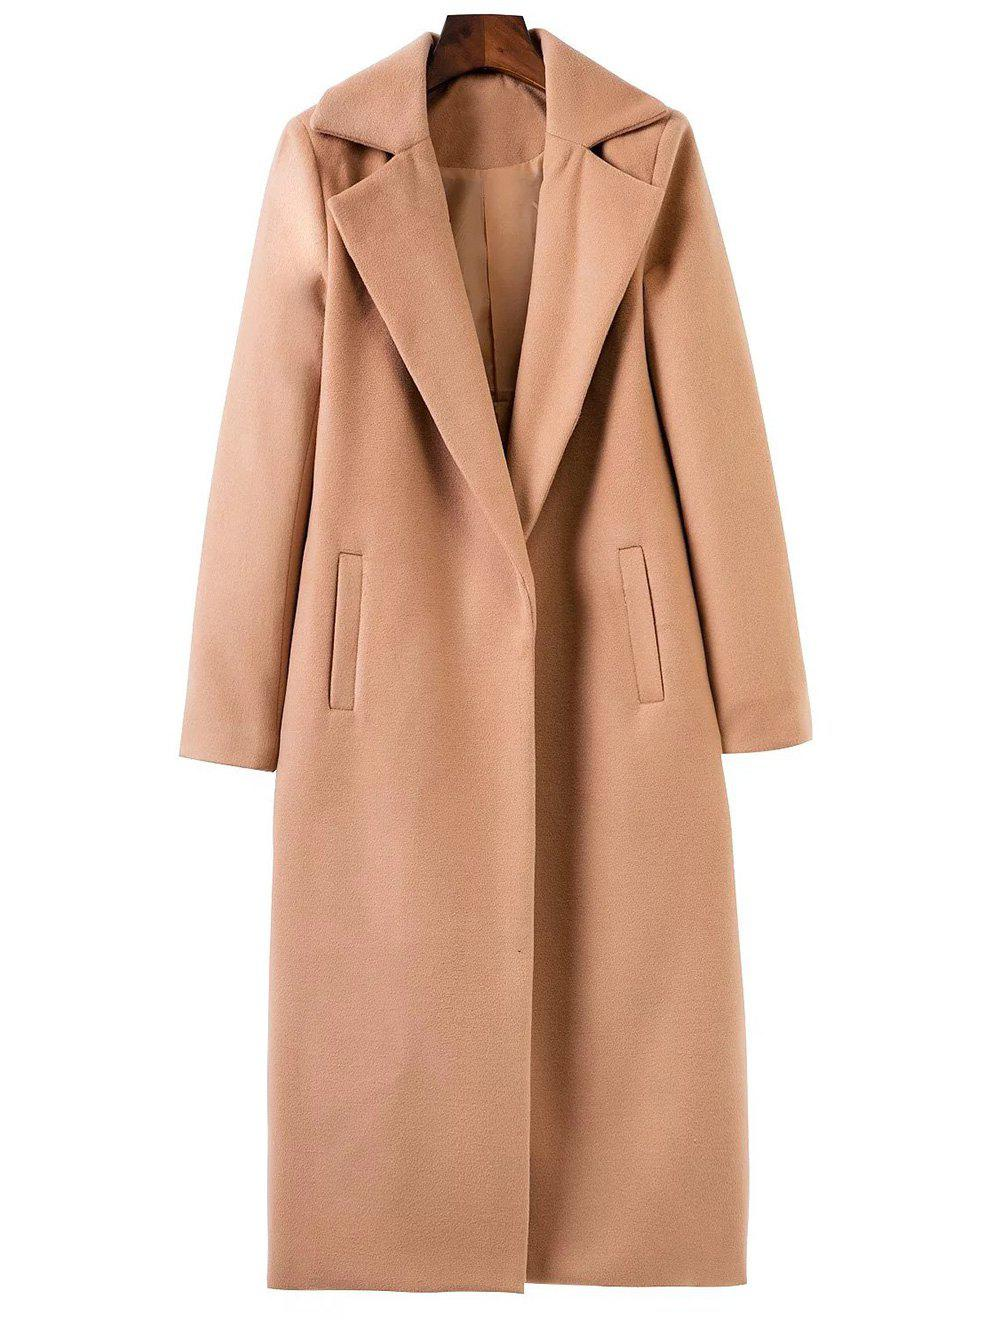 Affordable Lapel Collar Maxi Wrap Longline Cocoon Coat